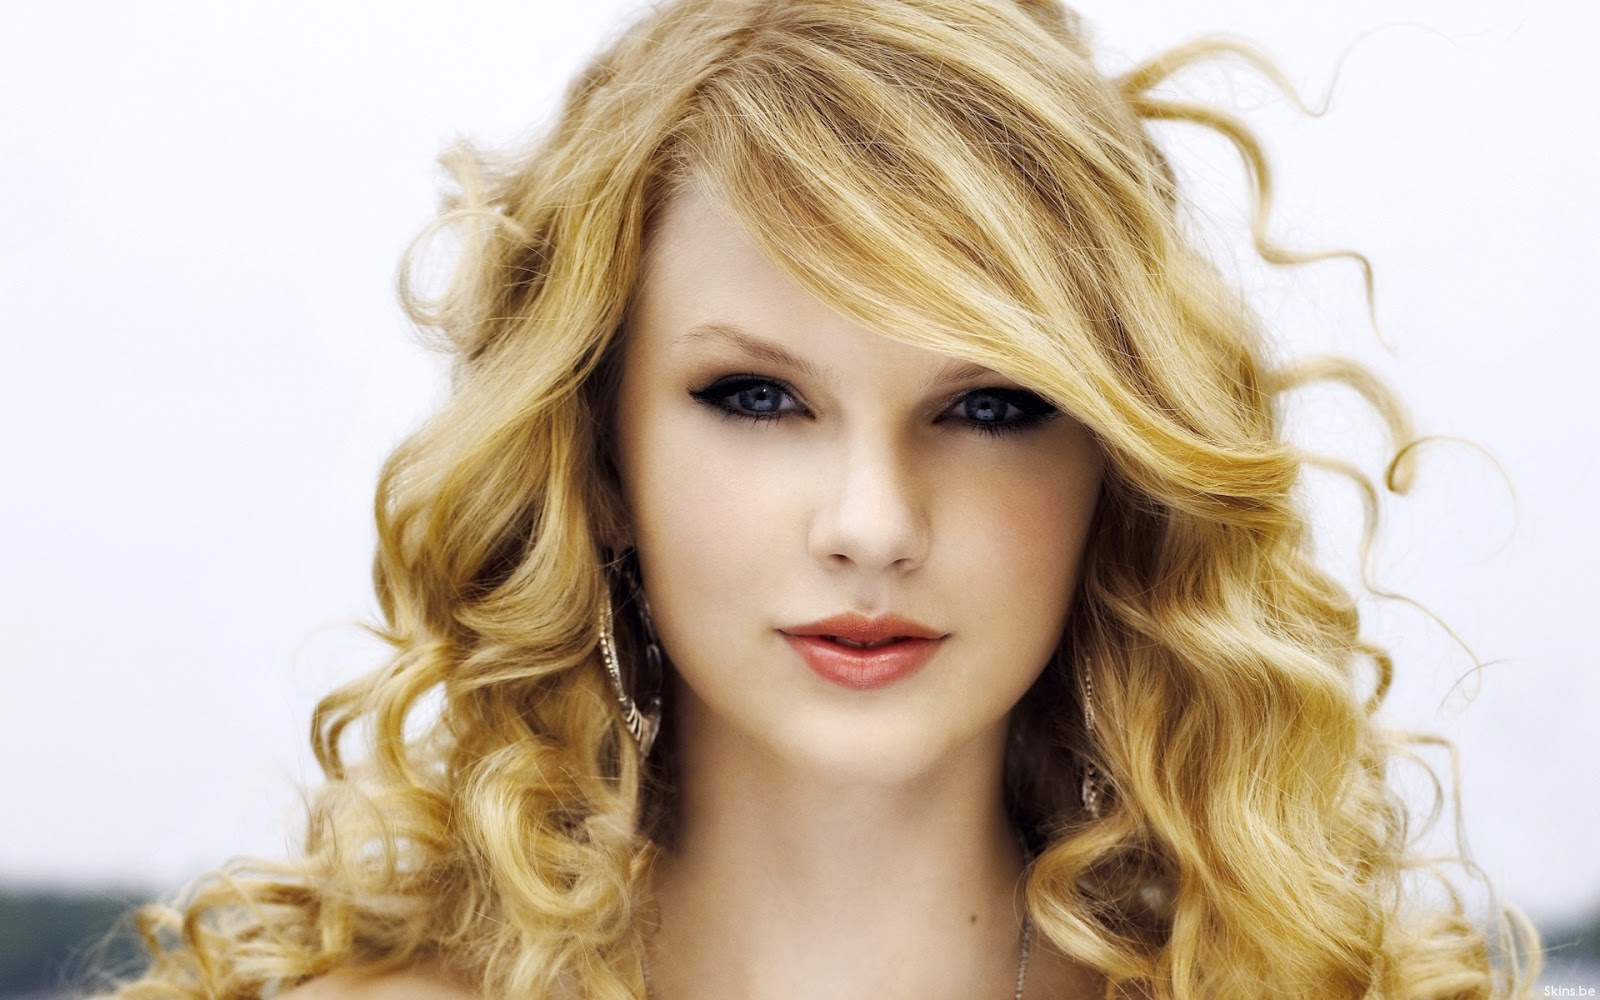 http://1.bp.blogspot.com/-dLtvvCNXIQ4/T5j_3Ig5Q1I/AAAAAAAAAC0/uGRNfMC-6O4/s1600/Cute-doll-babe-taylor-swift-blonde-girl-biography-2012-8.jpg